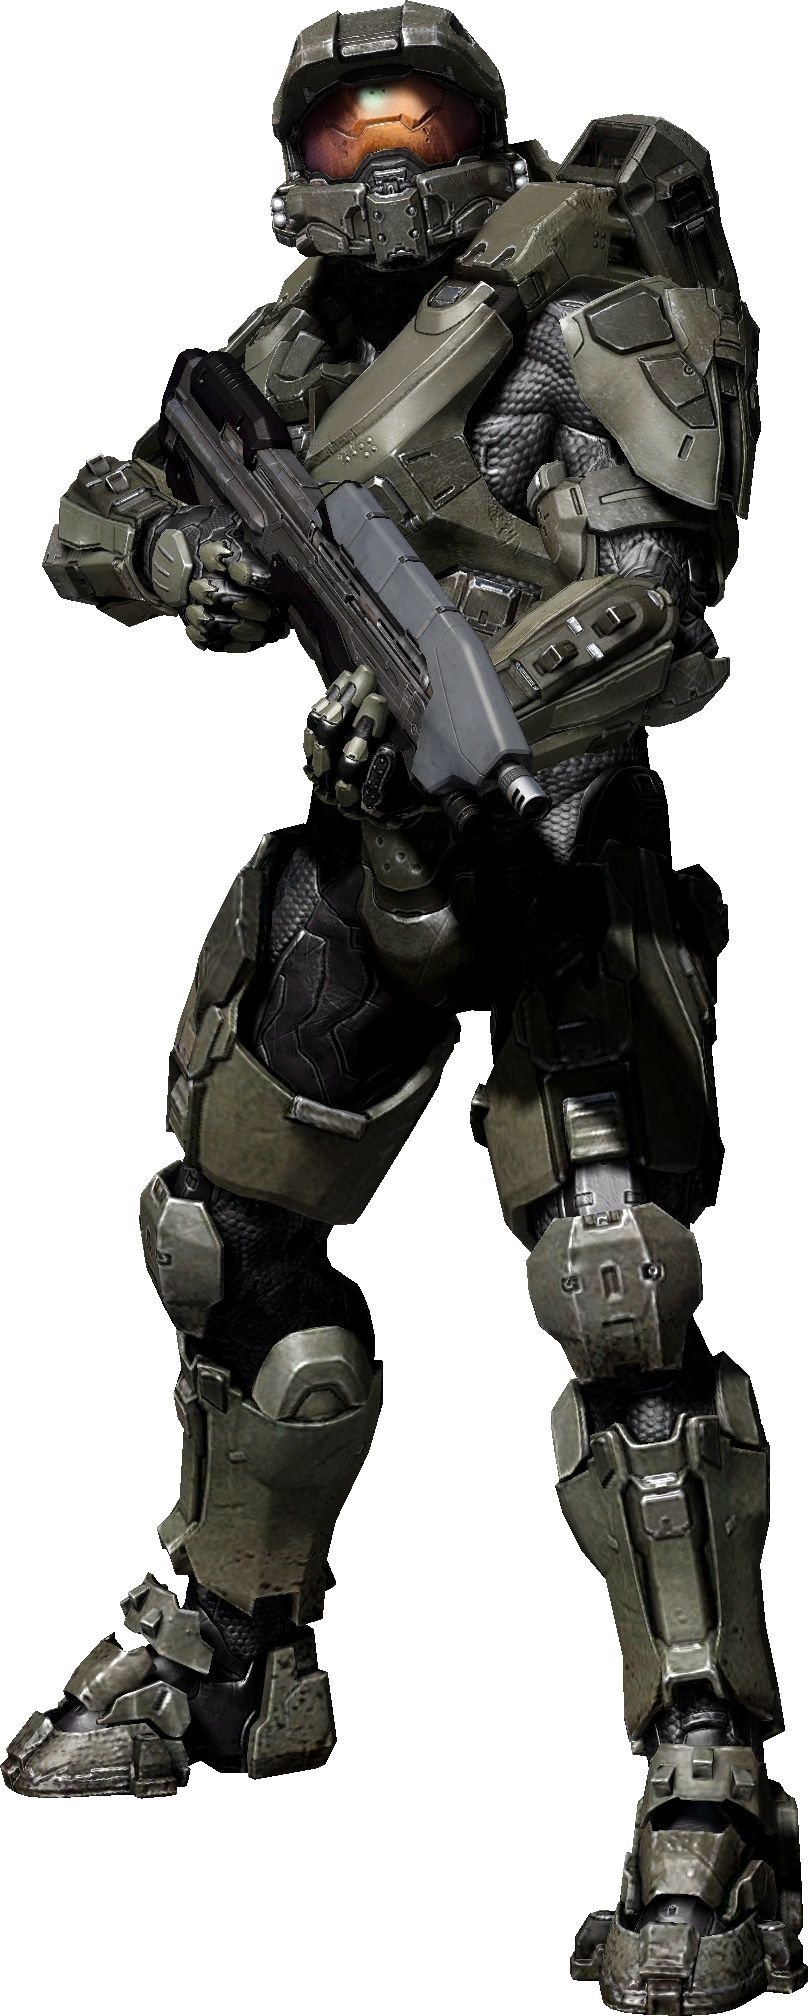 Master Chief's suit in Halo 4. I think I like this one the